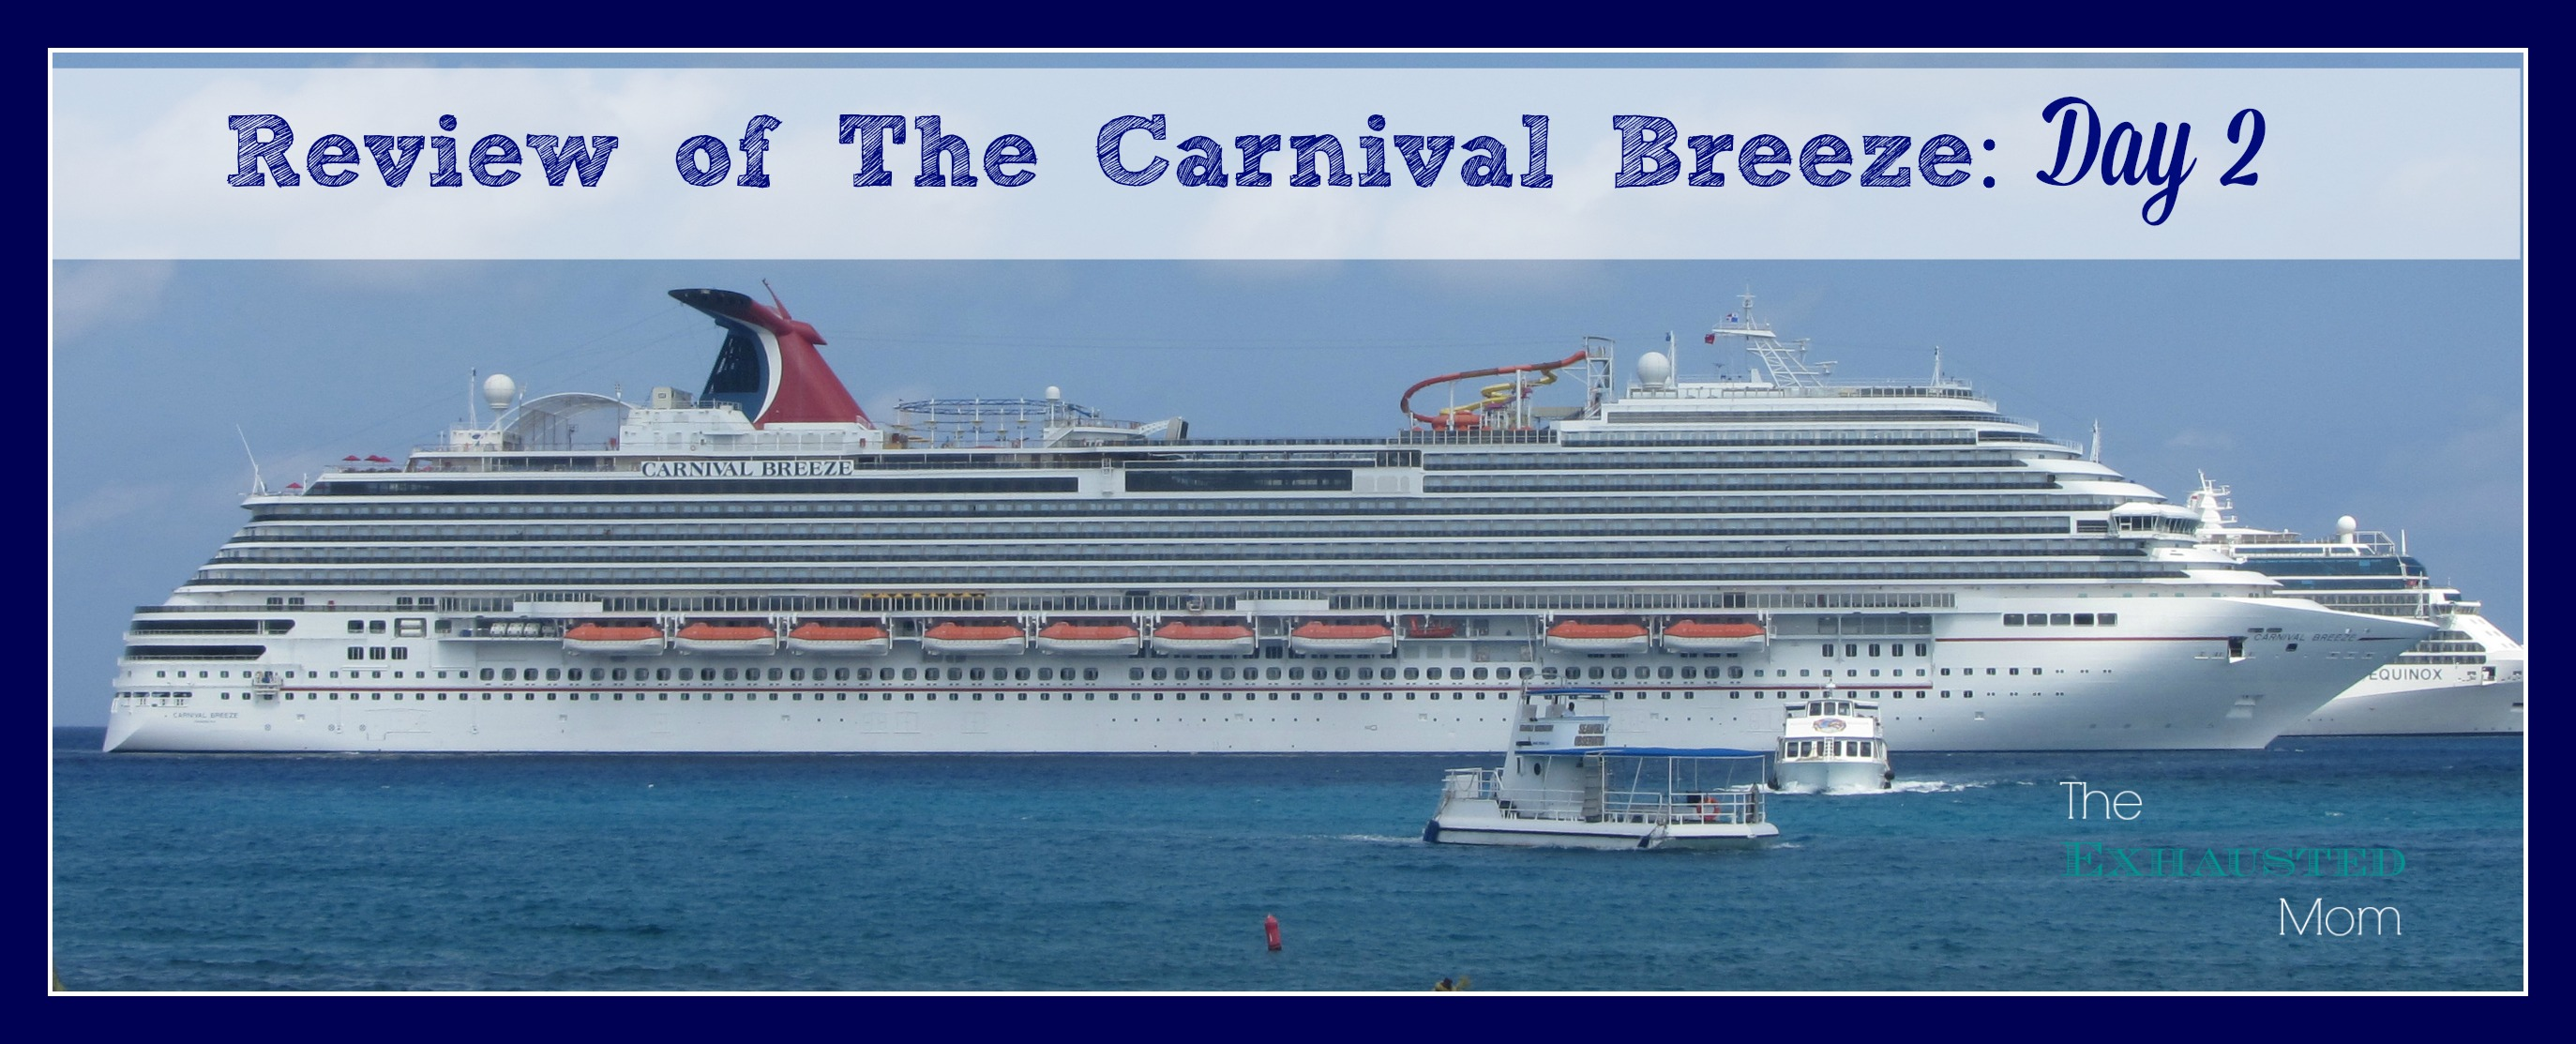 Review of The Carnival Breeze: Day 2